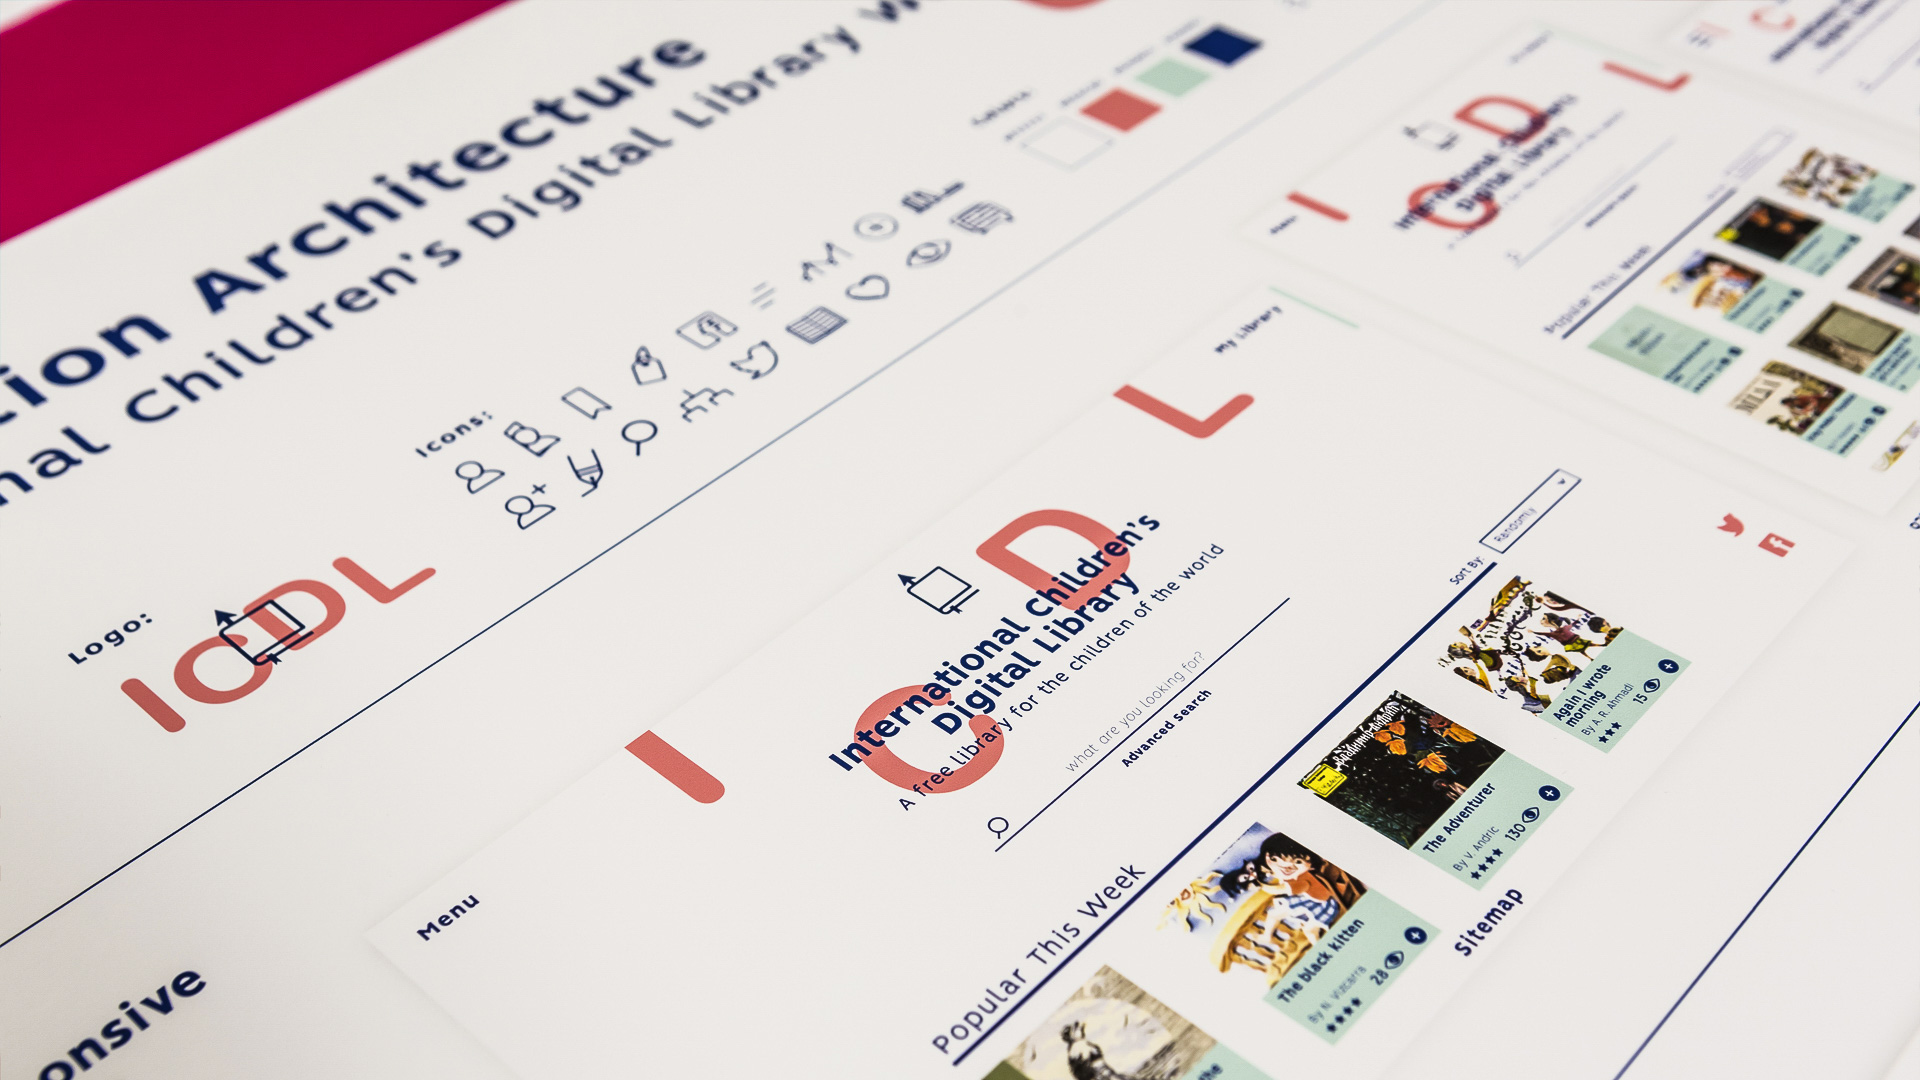 User interface information design project by master's student Maria Pitsillidou